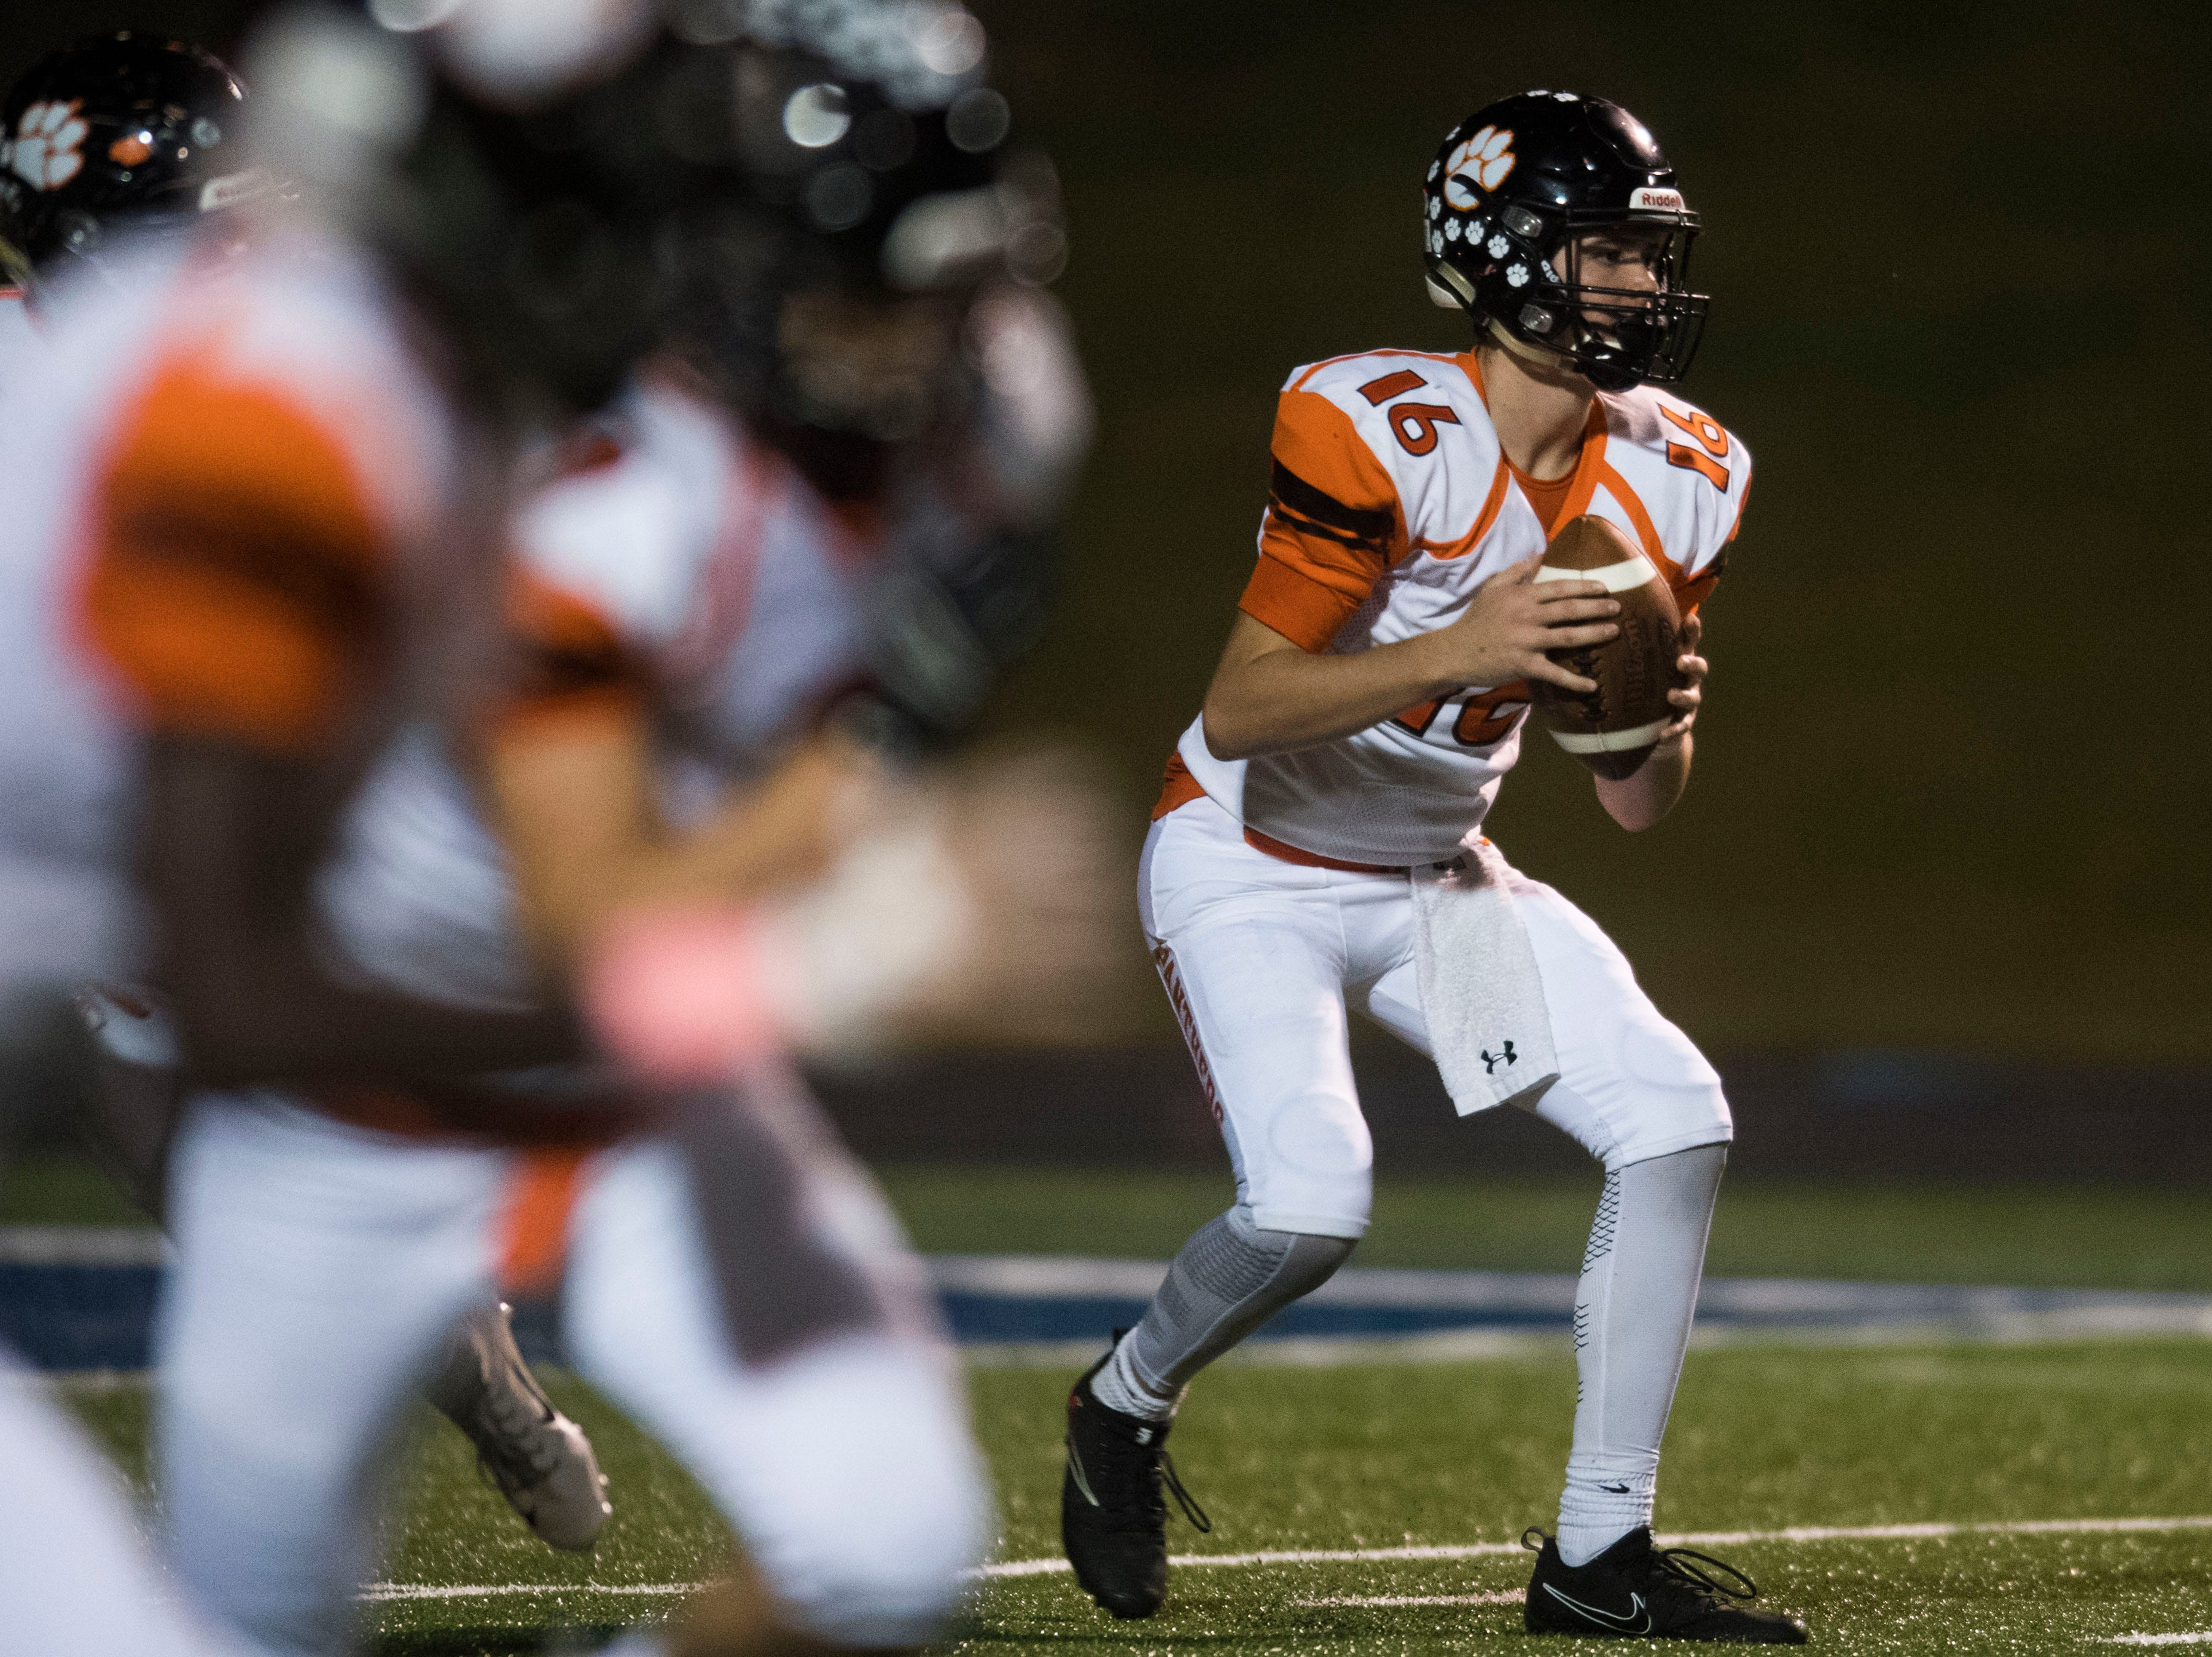 Powell's Walker Trusley (16) looks to pass during a game between West and Powell at West, Friday, Oct. 5, 2018. Powell defeated West 36-21.